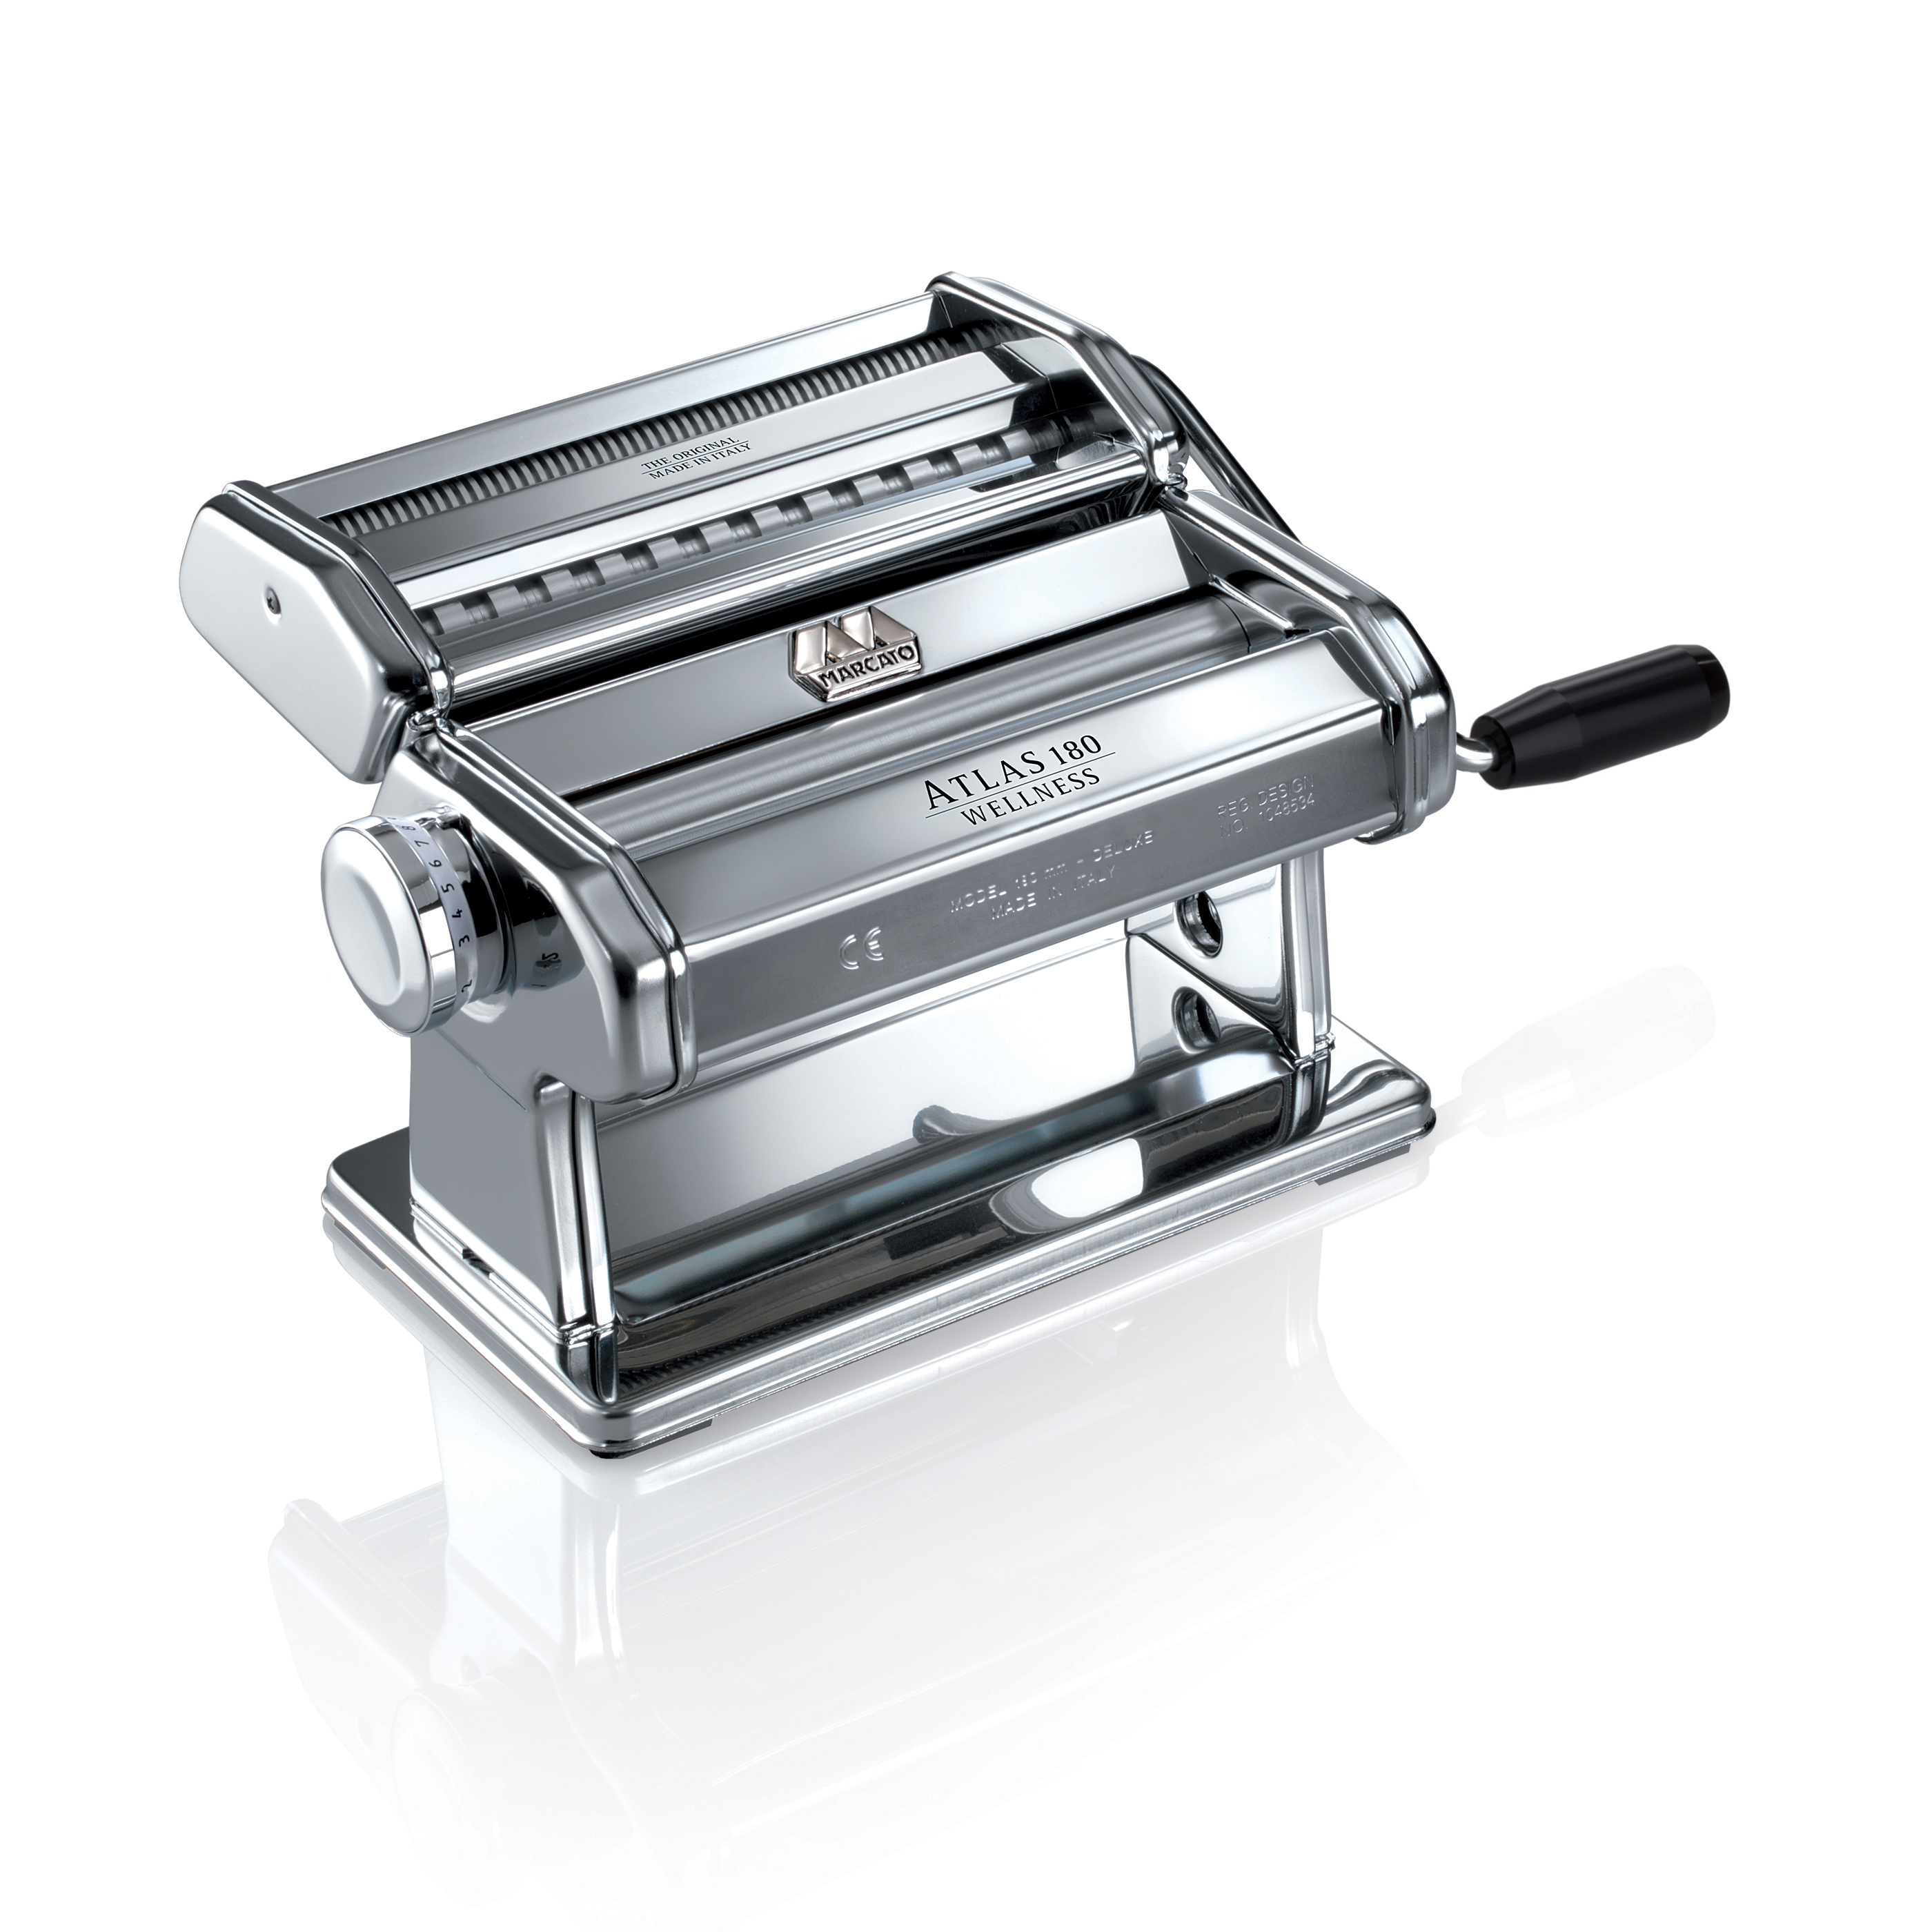 Atlas Made in Italy Pasta Machine, Stainless Steel, Silver, Includes 180-Millimeter Pasta Machine with Pasta Cutter, Hand Crank, and Instructions, 10-Year Warranty